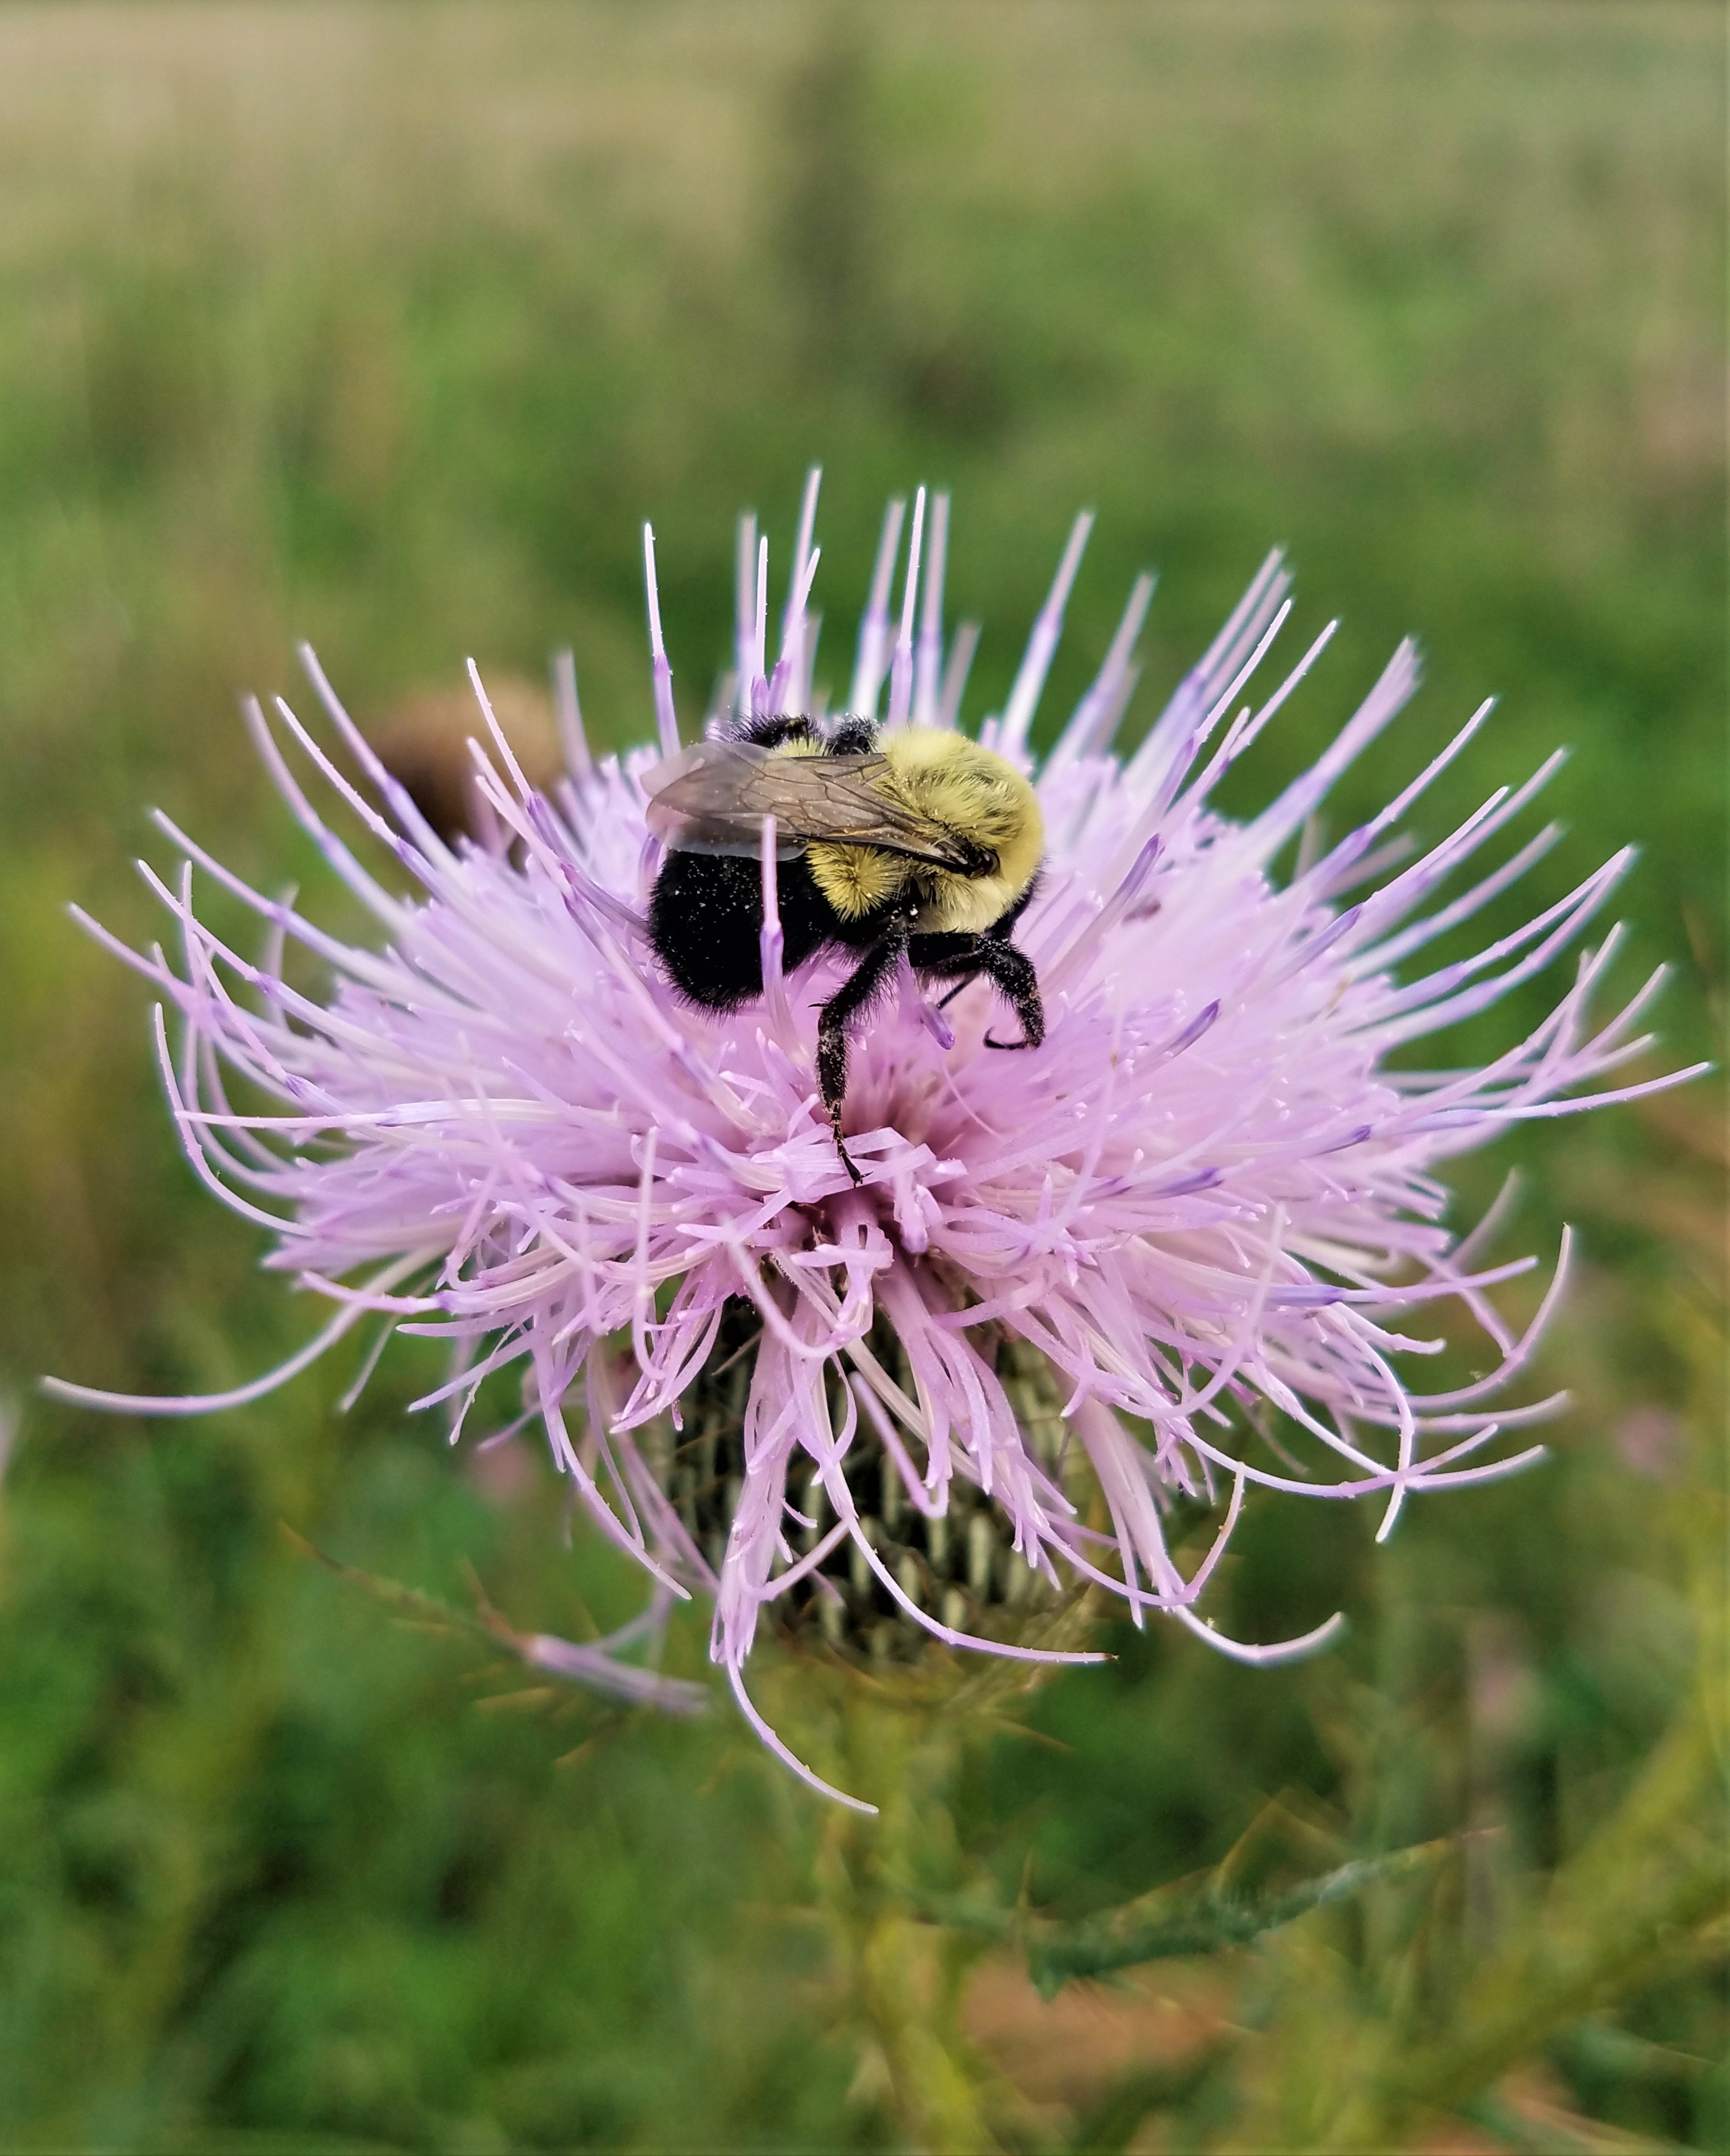 In the center of a large pink-colored thistle bloom is a black and yellow bumble bee.